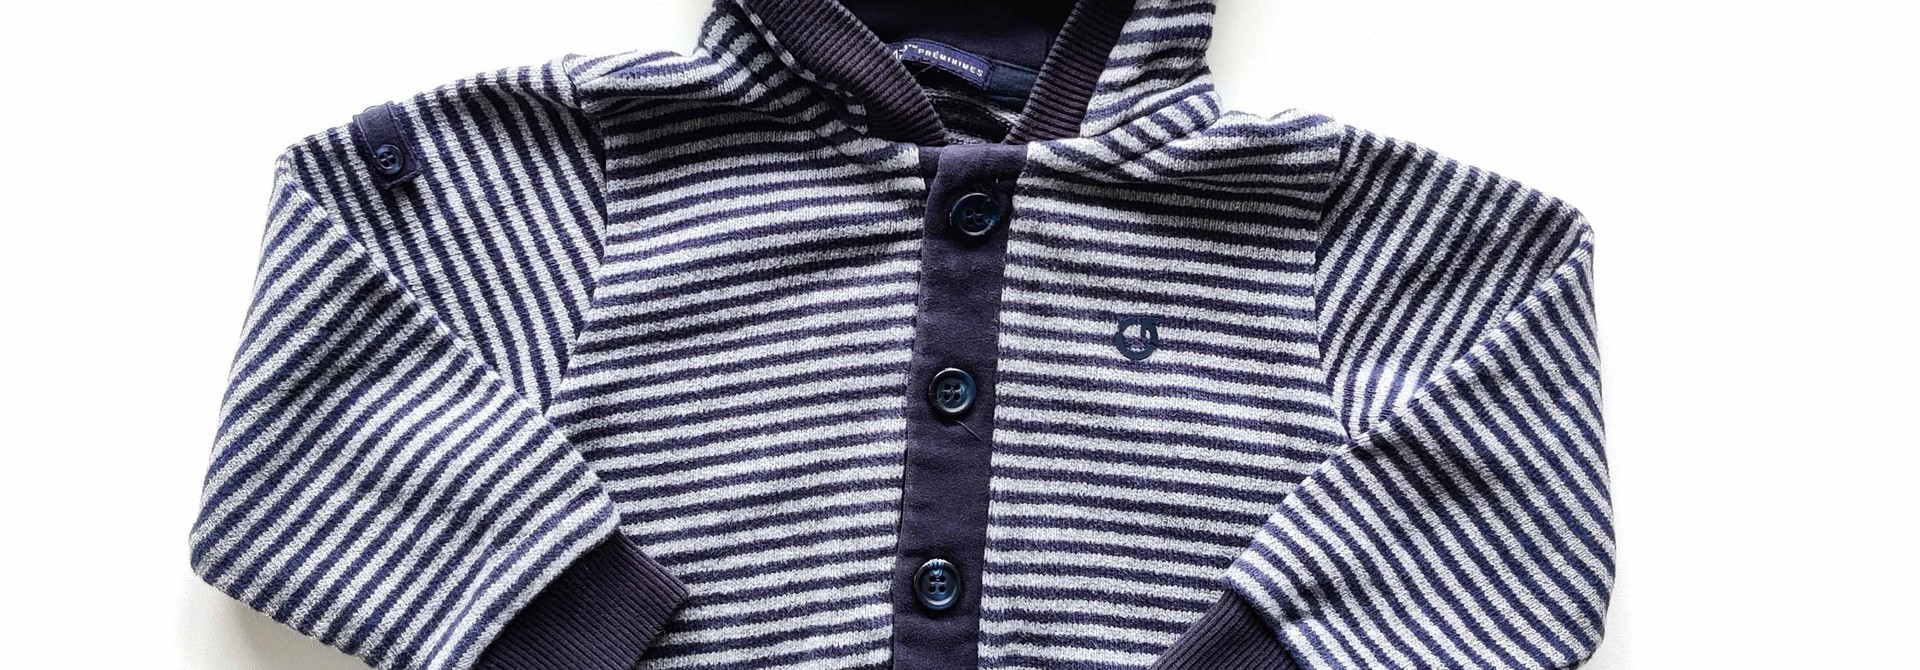 Sweater GYMP, maat 86